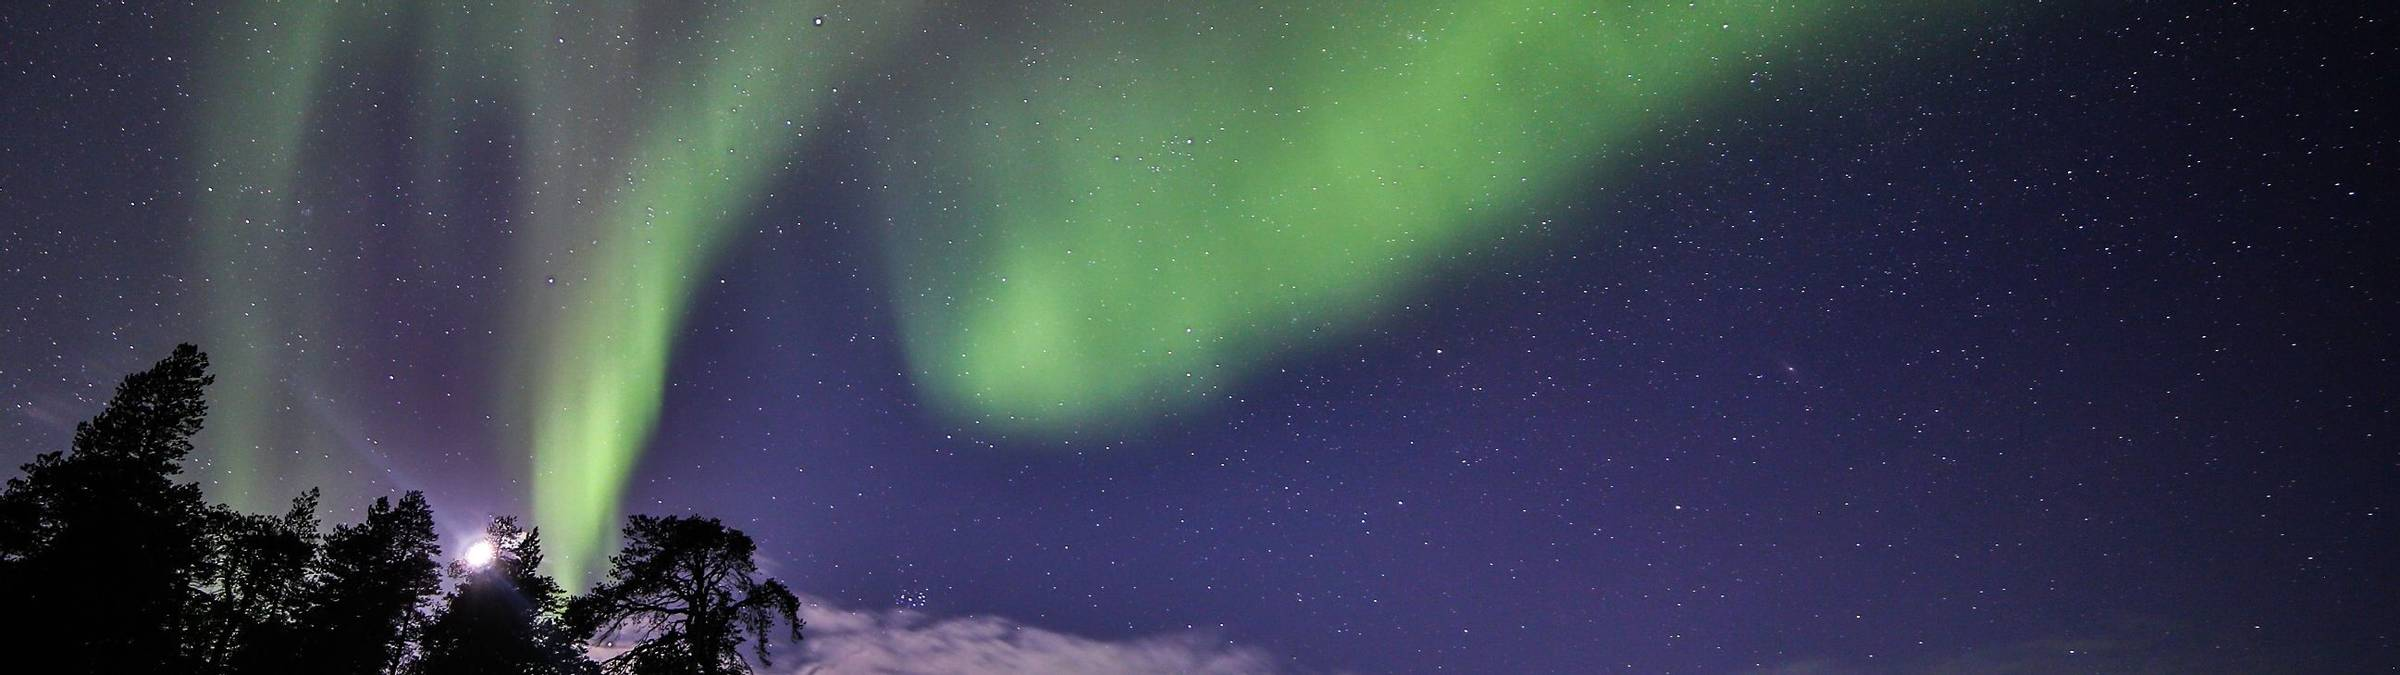 Northern Lights Holidays In Nellim Finnish Lapland